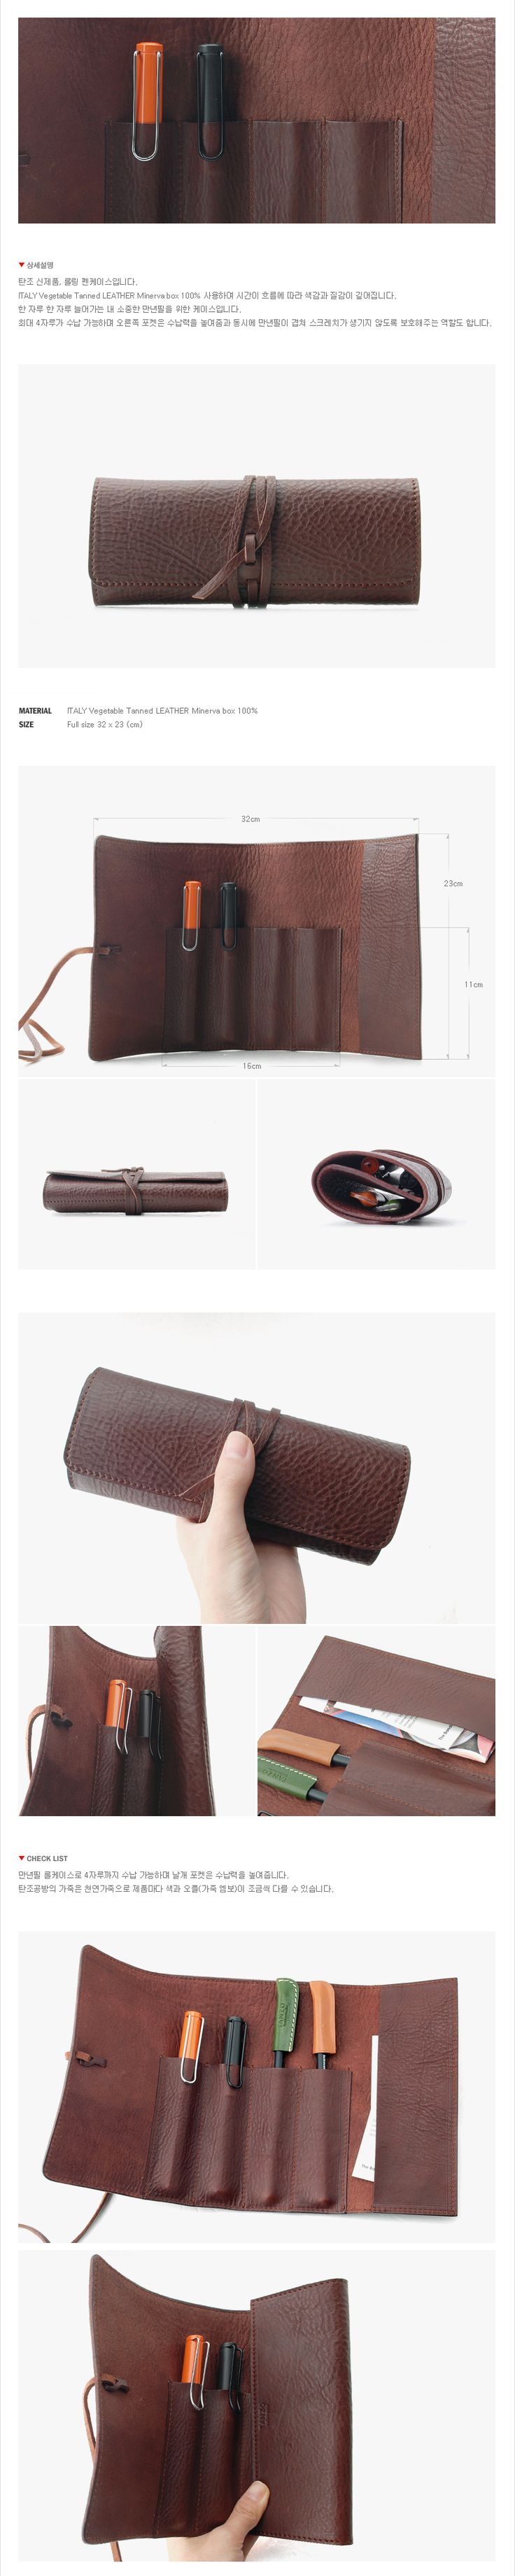 pen wrap - useful for enhancing a wood-covered, leather-hinged notebook or journal